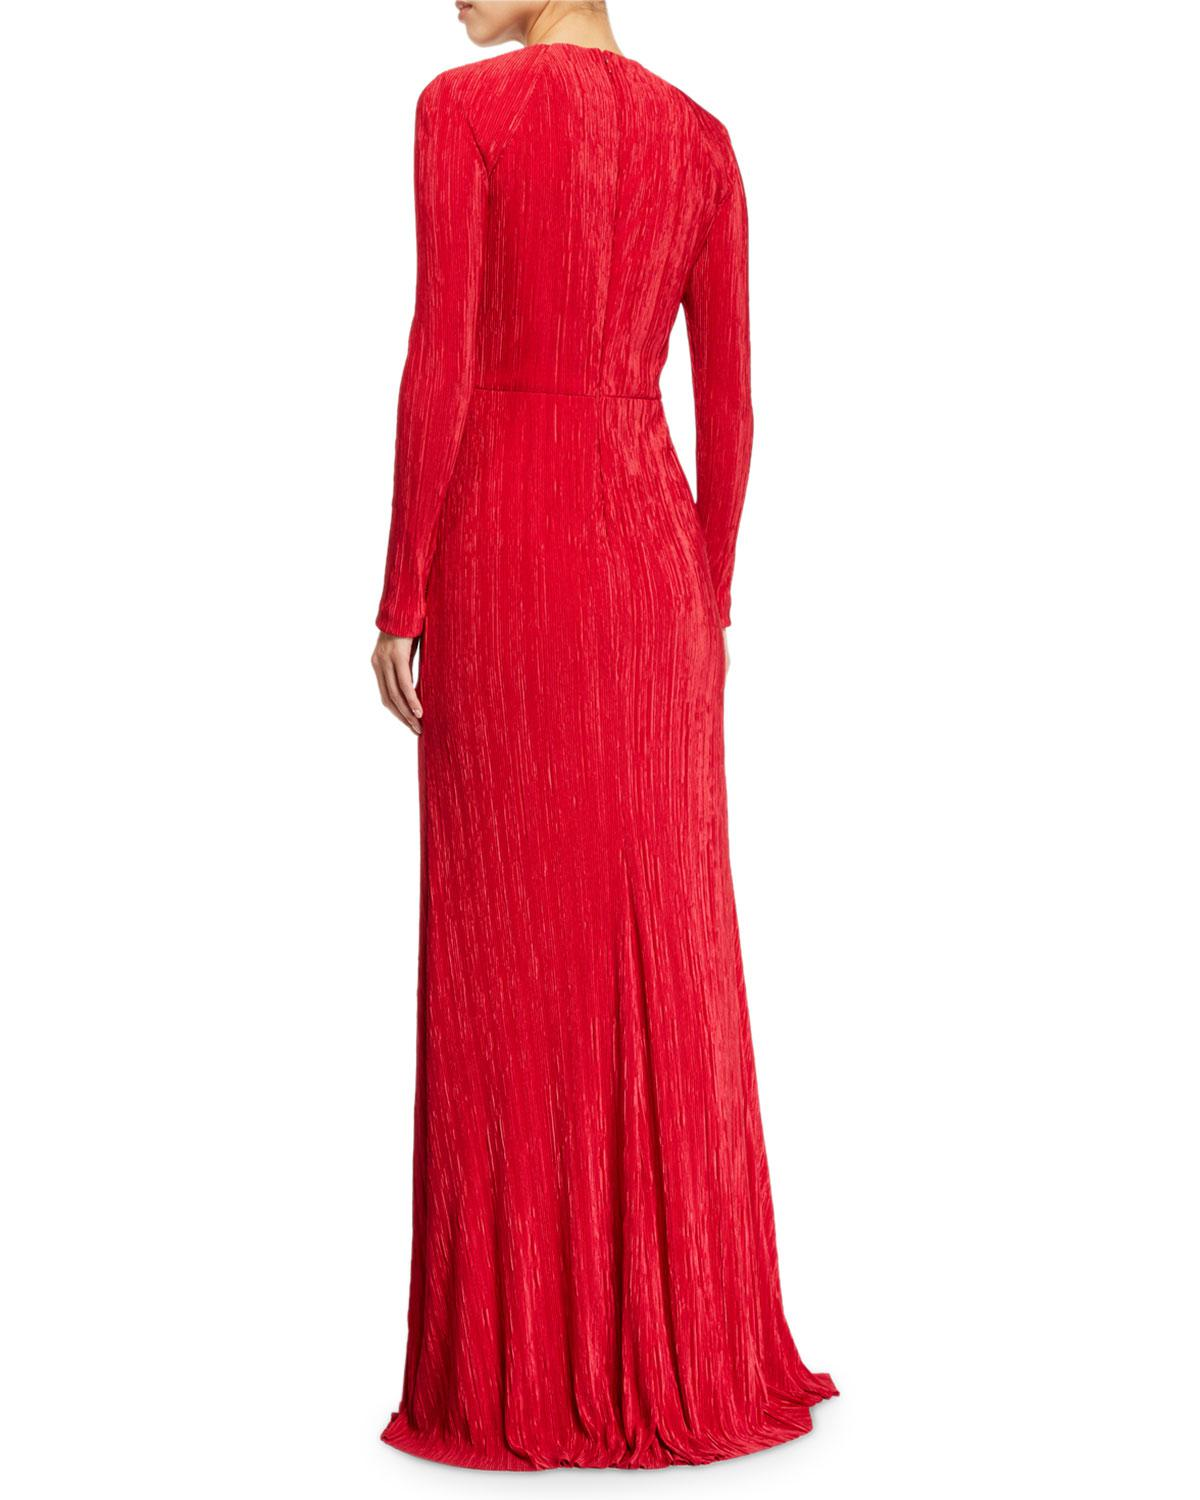 da0fe78644c Badgley Mischka Fortuni Knotted Long-sleeve Drape Dress in Red - Lyst